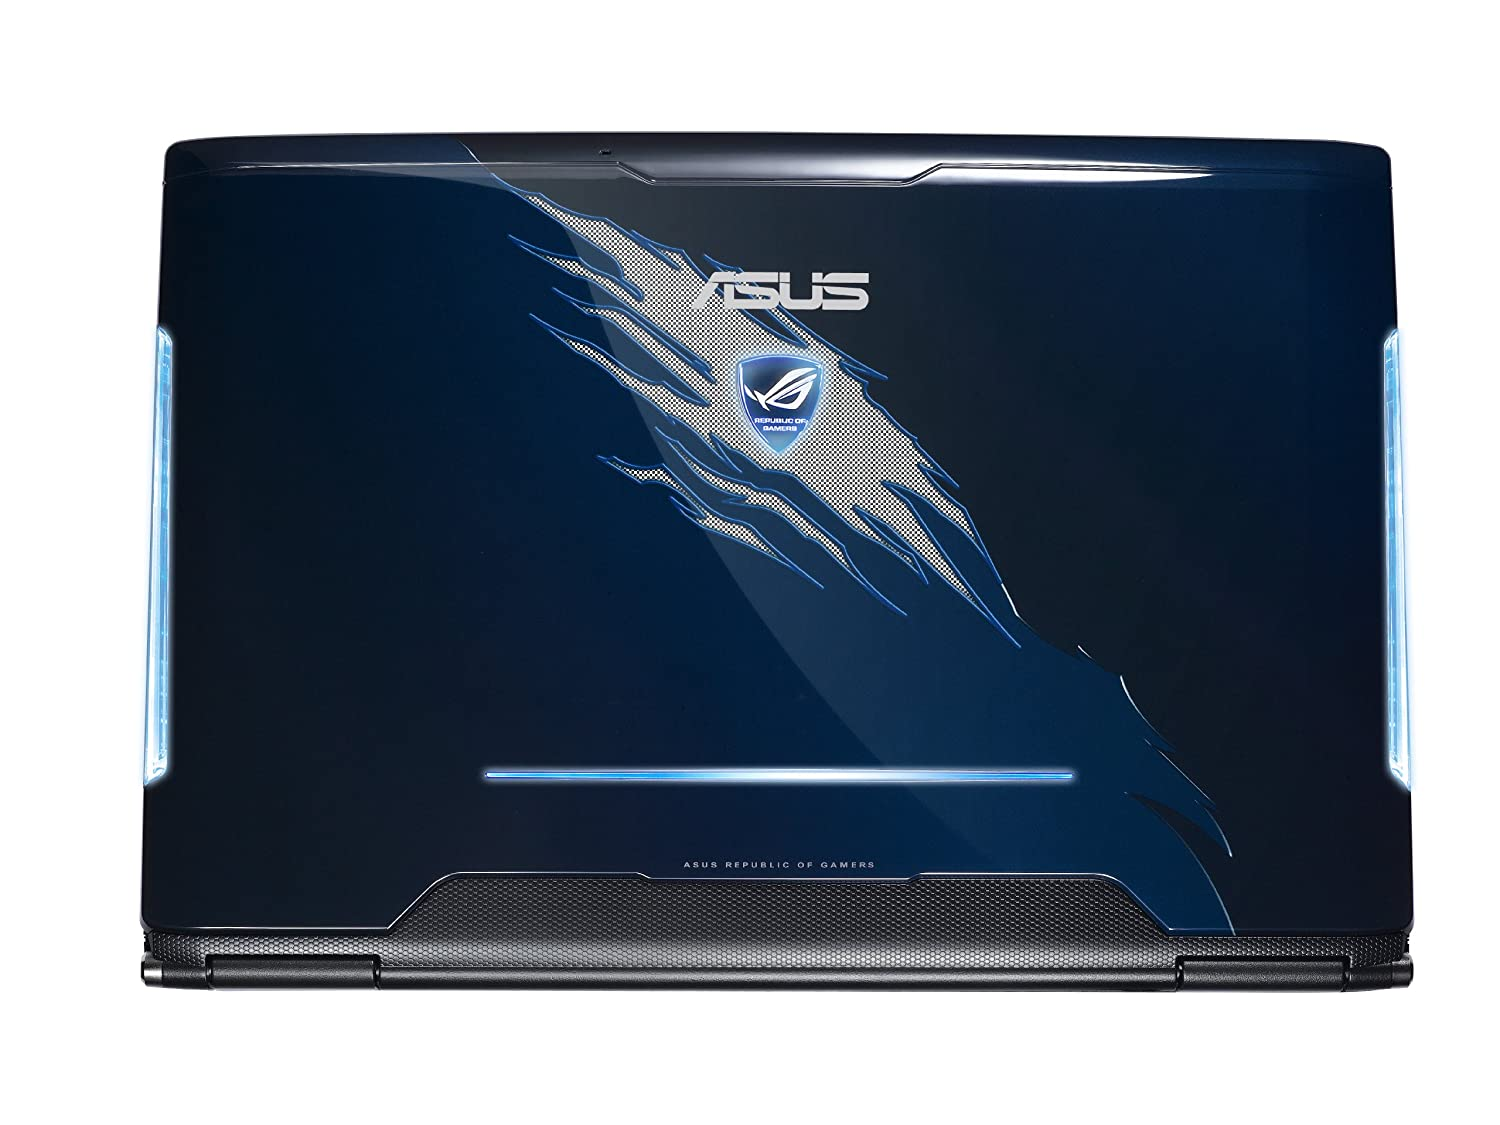 Amazonca Laptops ASUS Republic Of Gamers G51JX A1 156 Inch Gaming